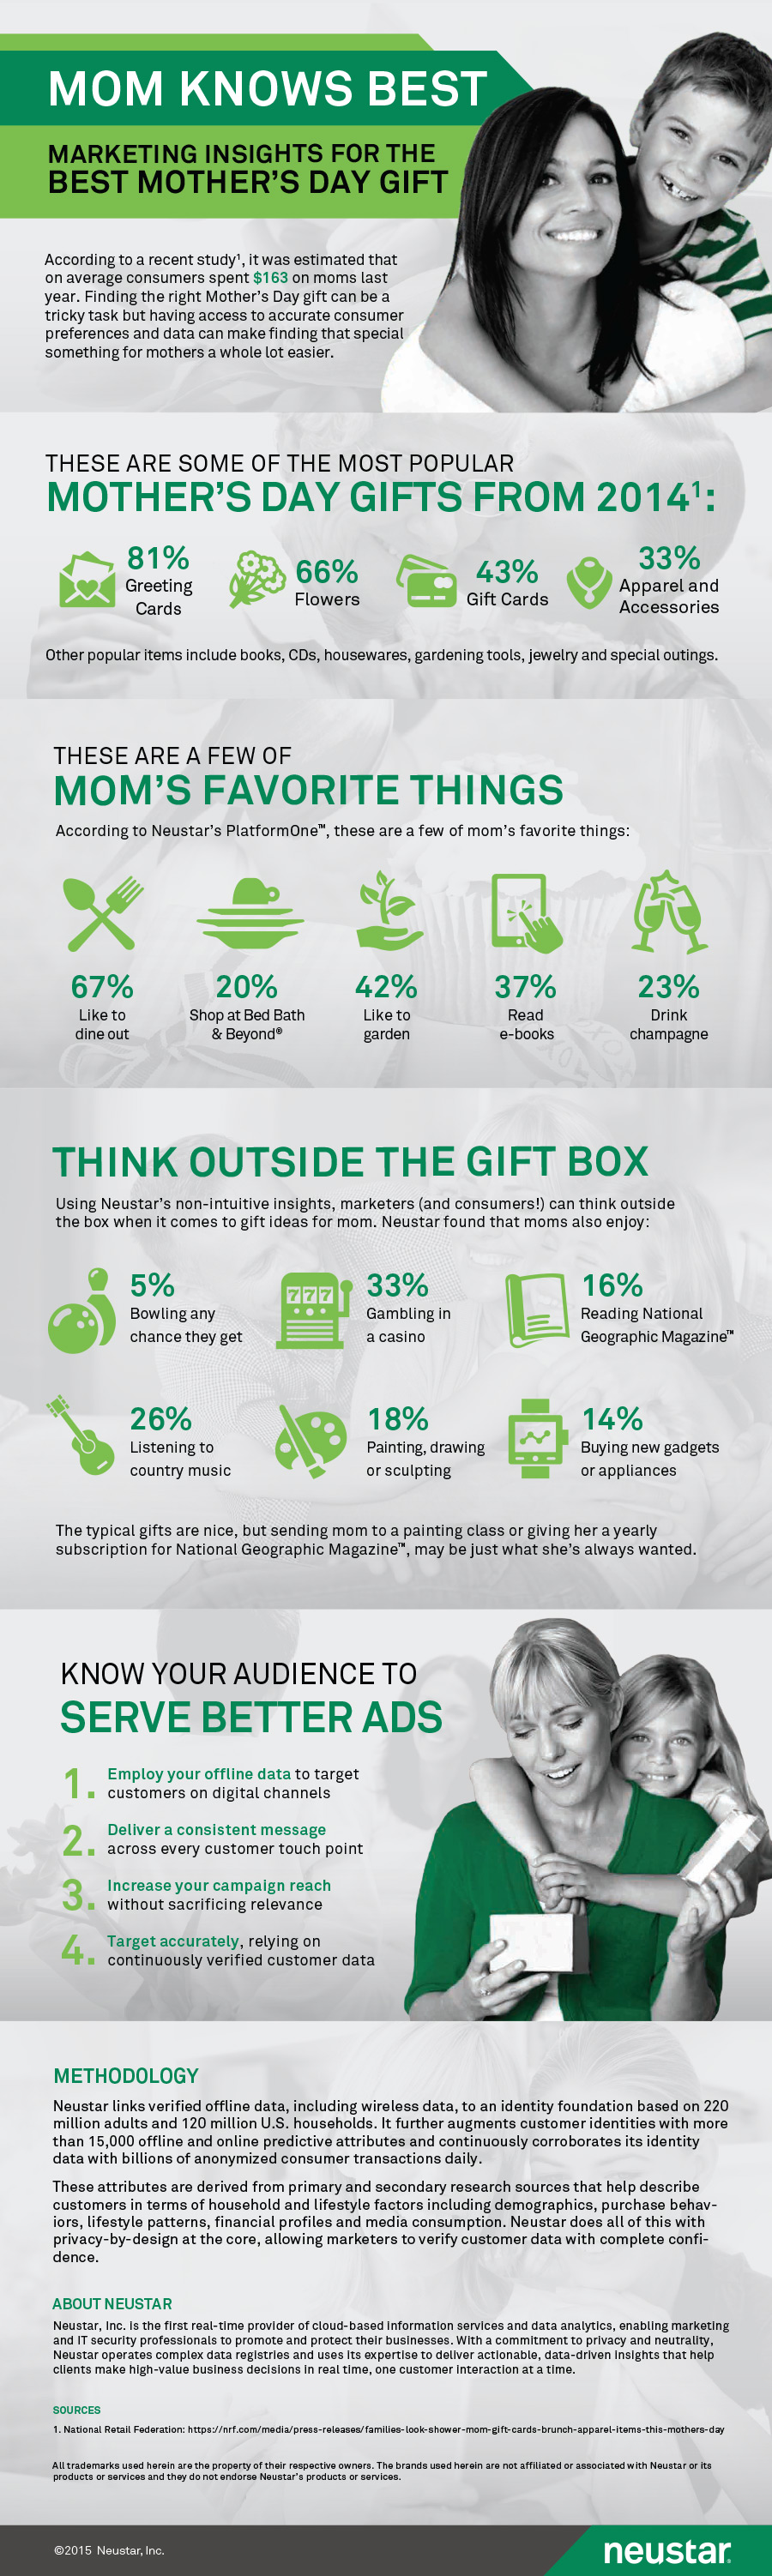 Best Mother's Day Gift Ideas Infographic